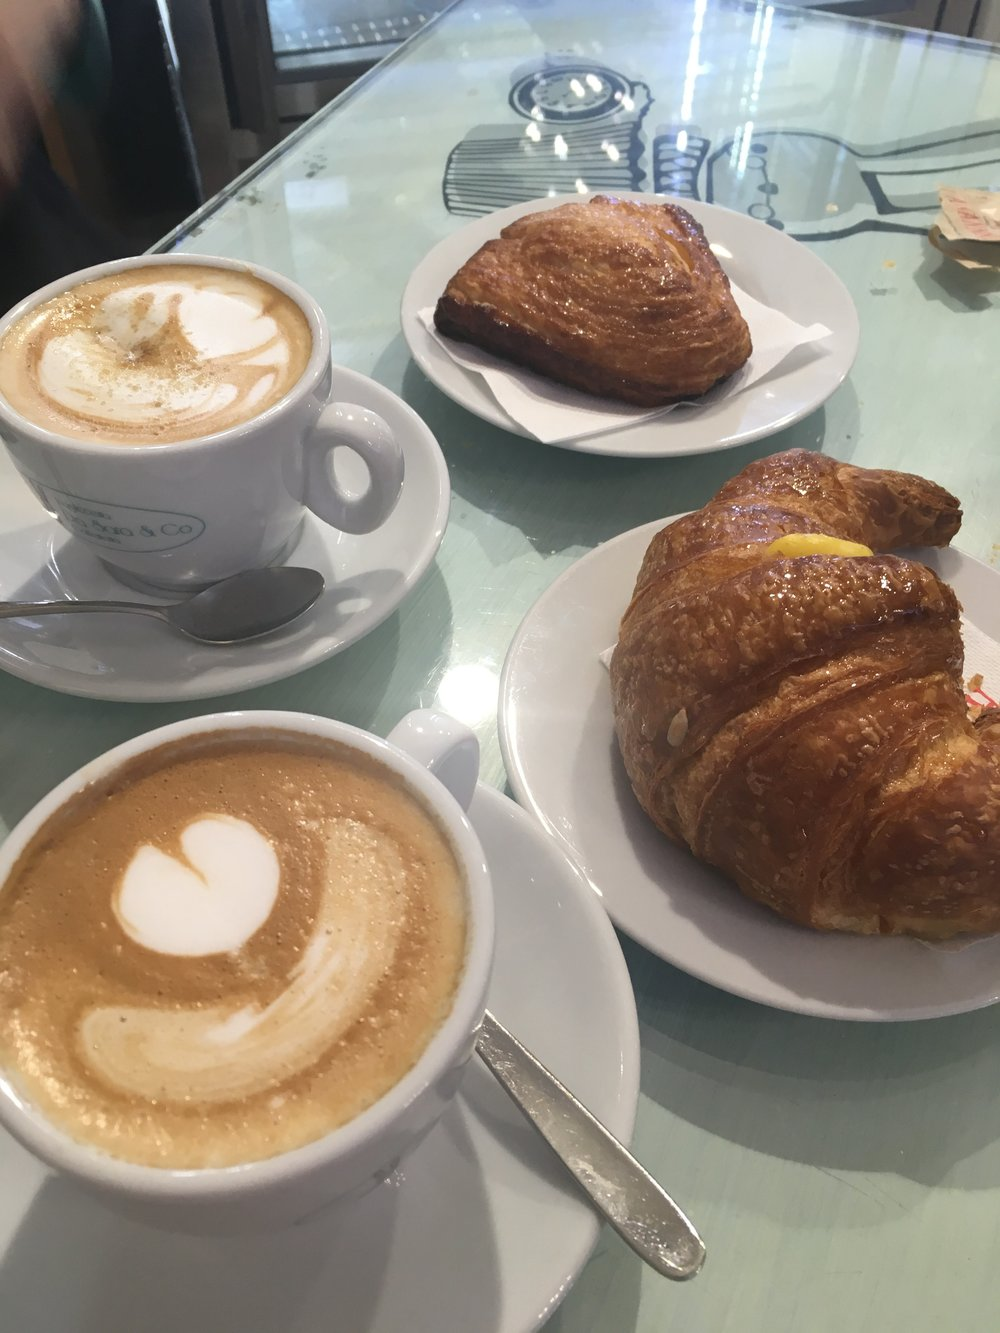 A morning cappuccino and a pastry - breakfast Italian style